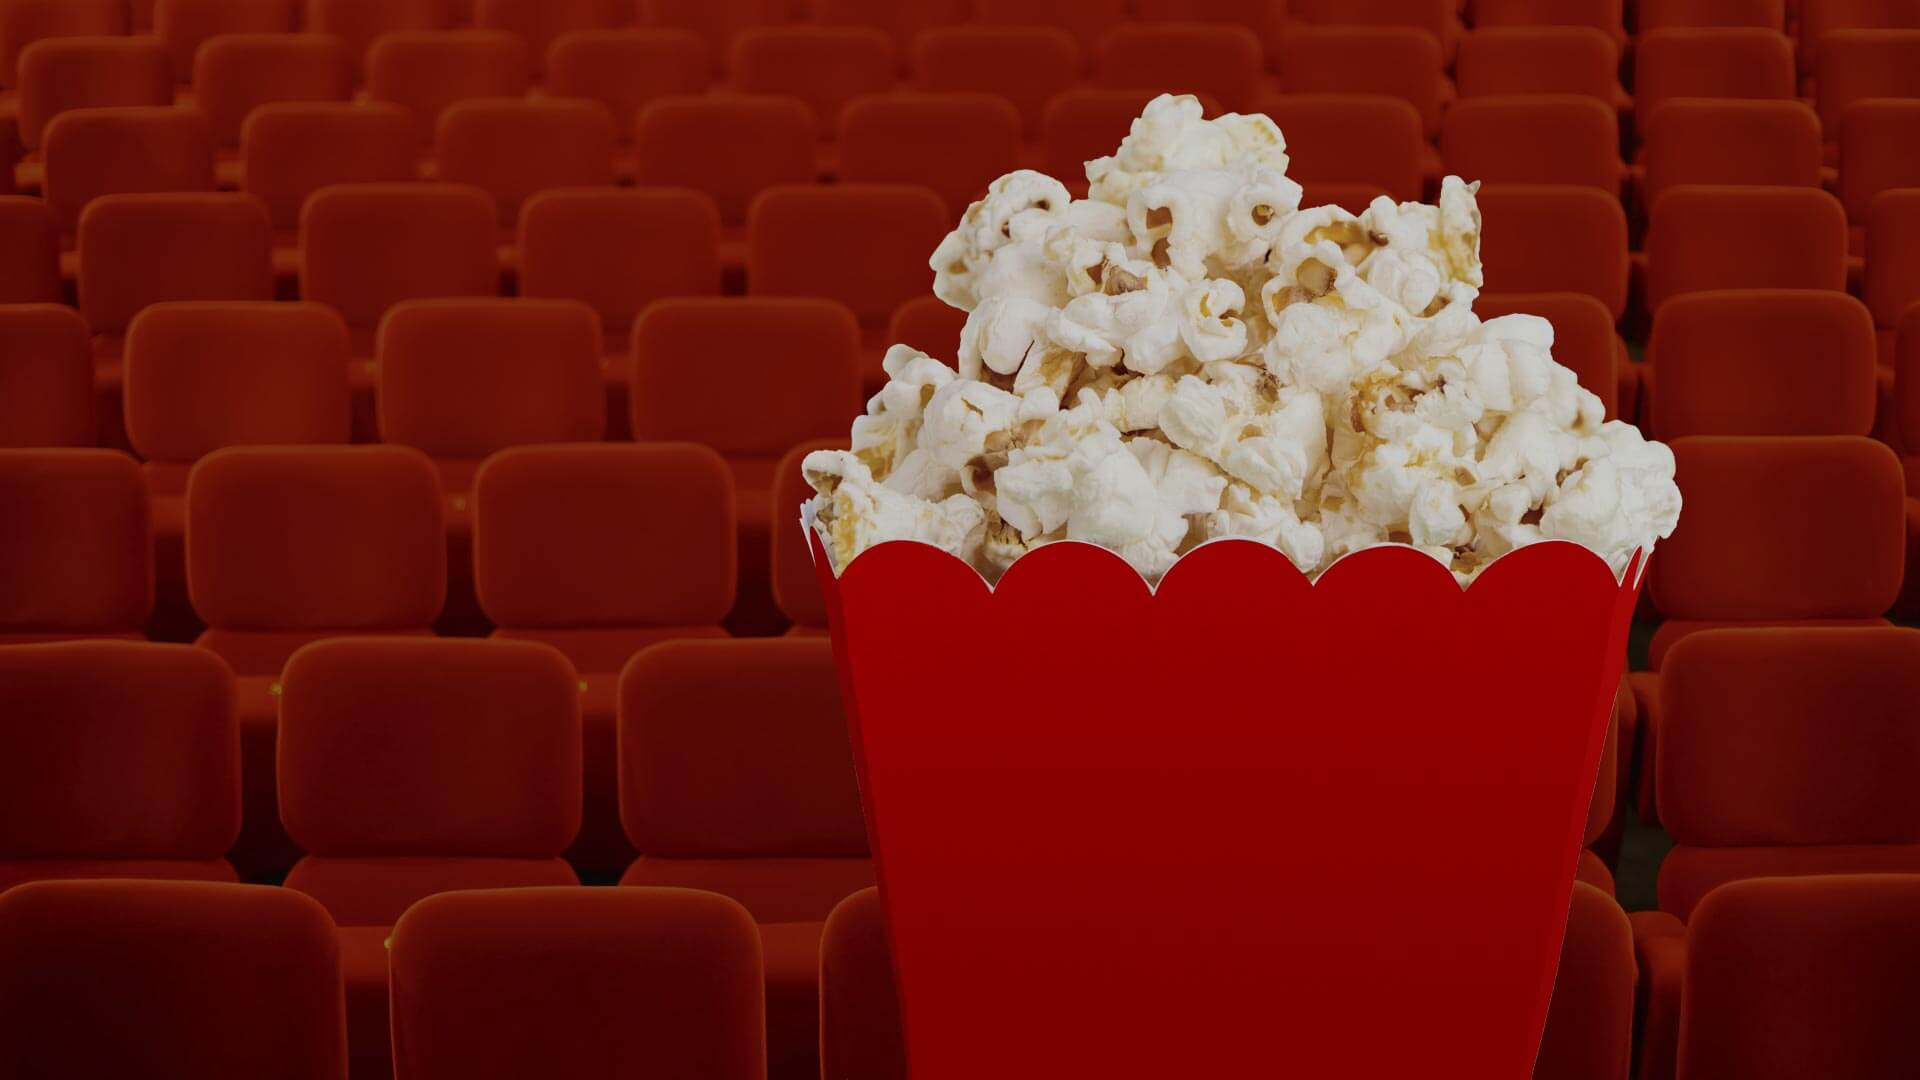 Red theater seats with popcorn